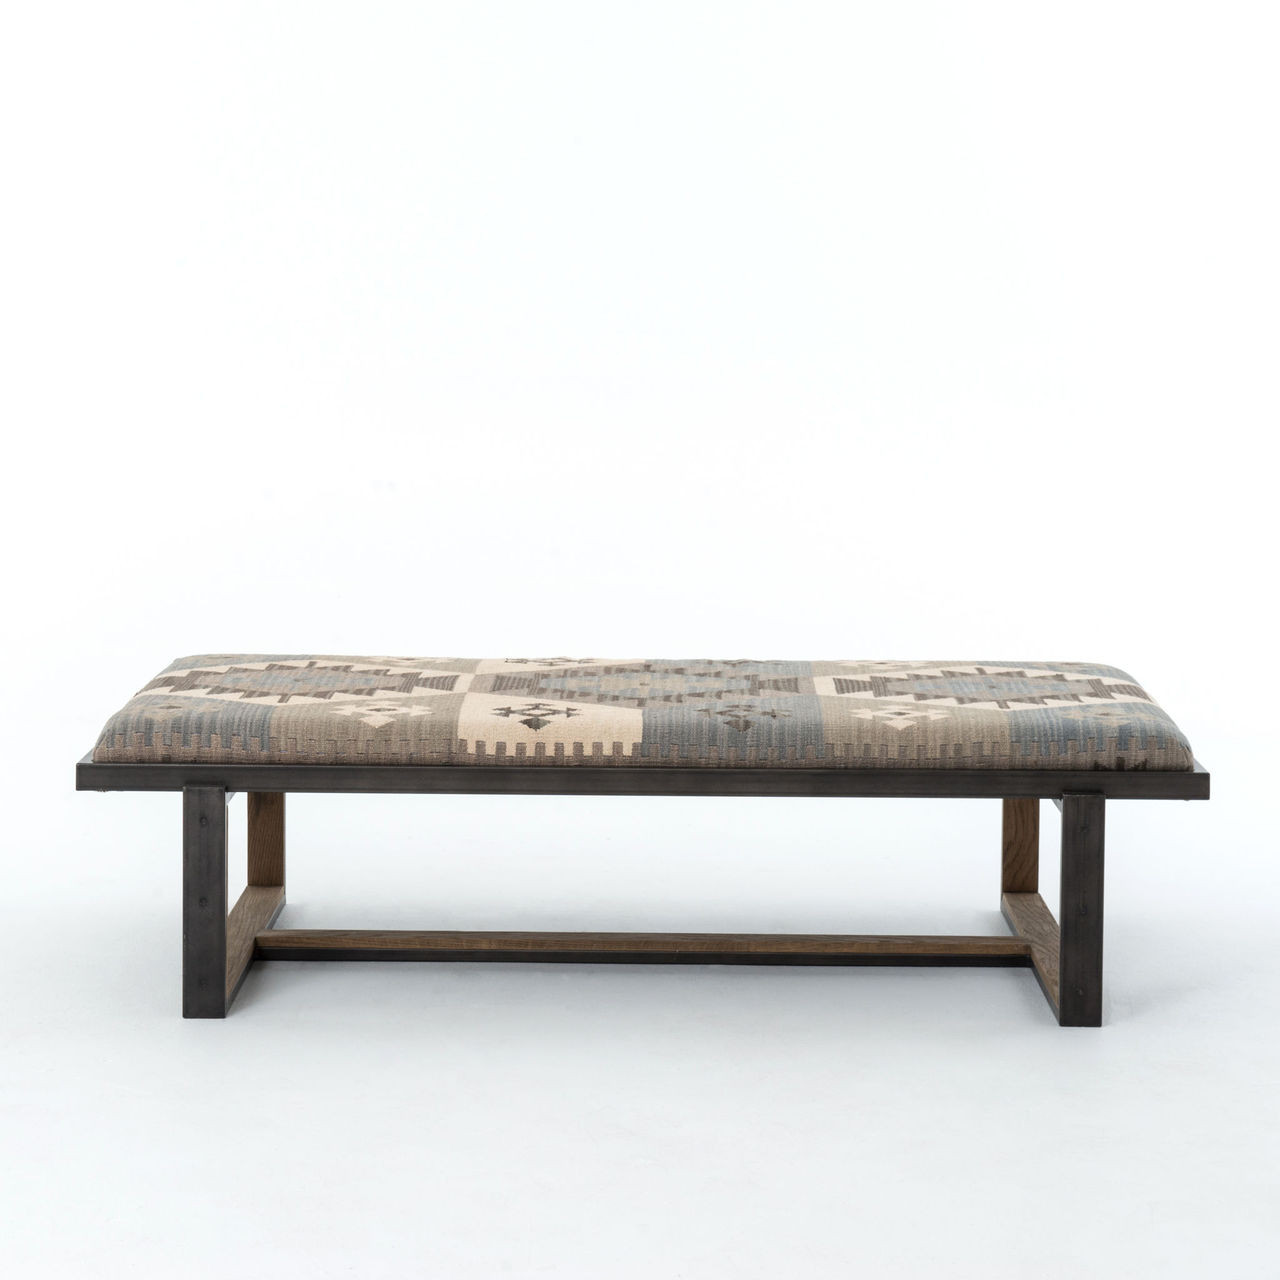 Industrial Coffee Table Ottoman: Eclectic Iron And Kilim Upholstered Coffee Table Ottoman